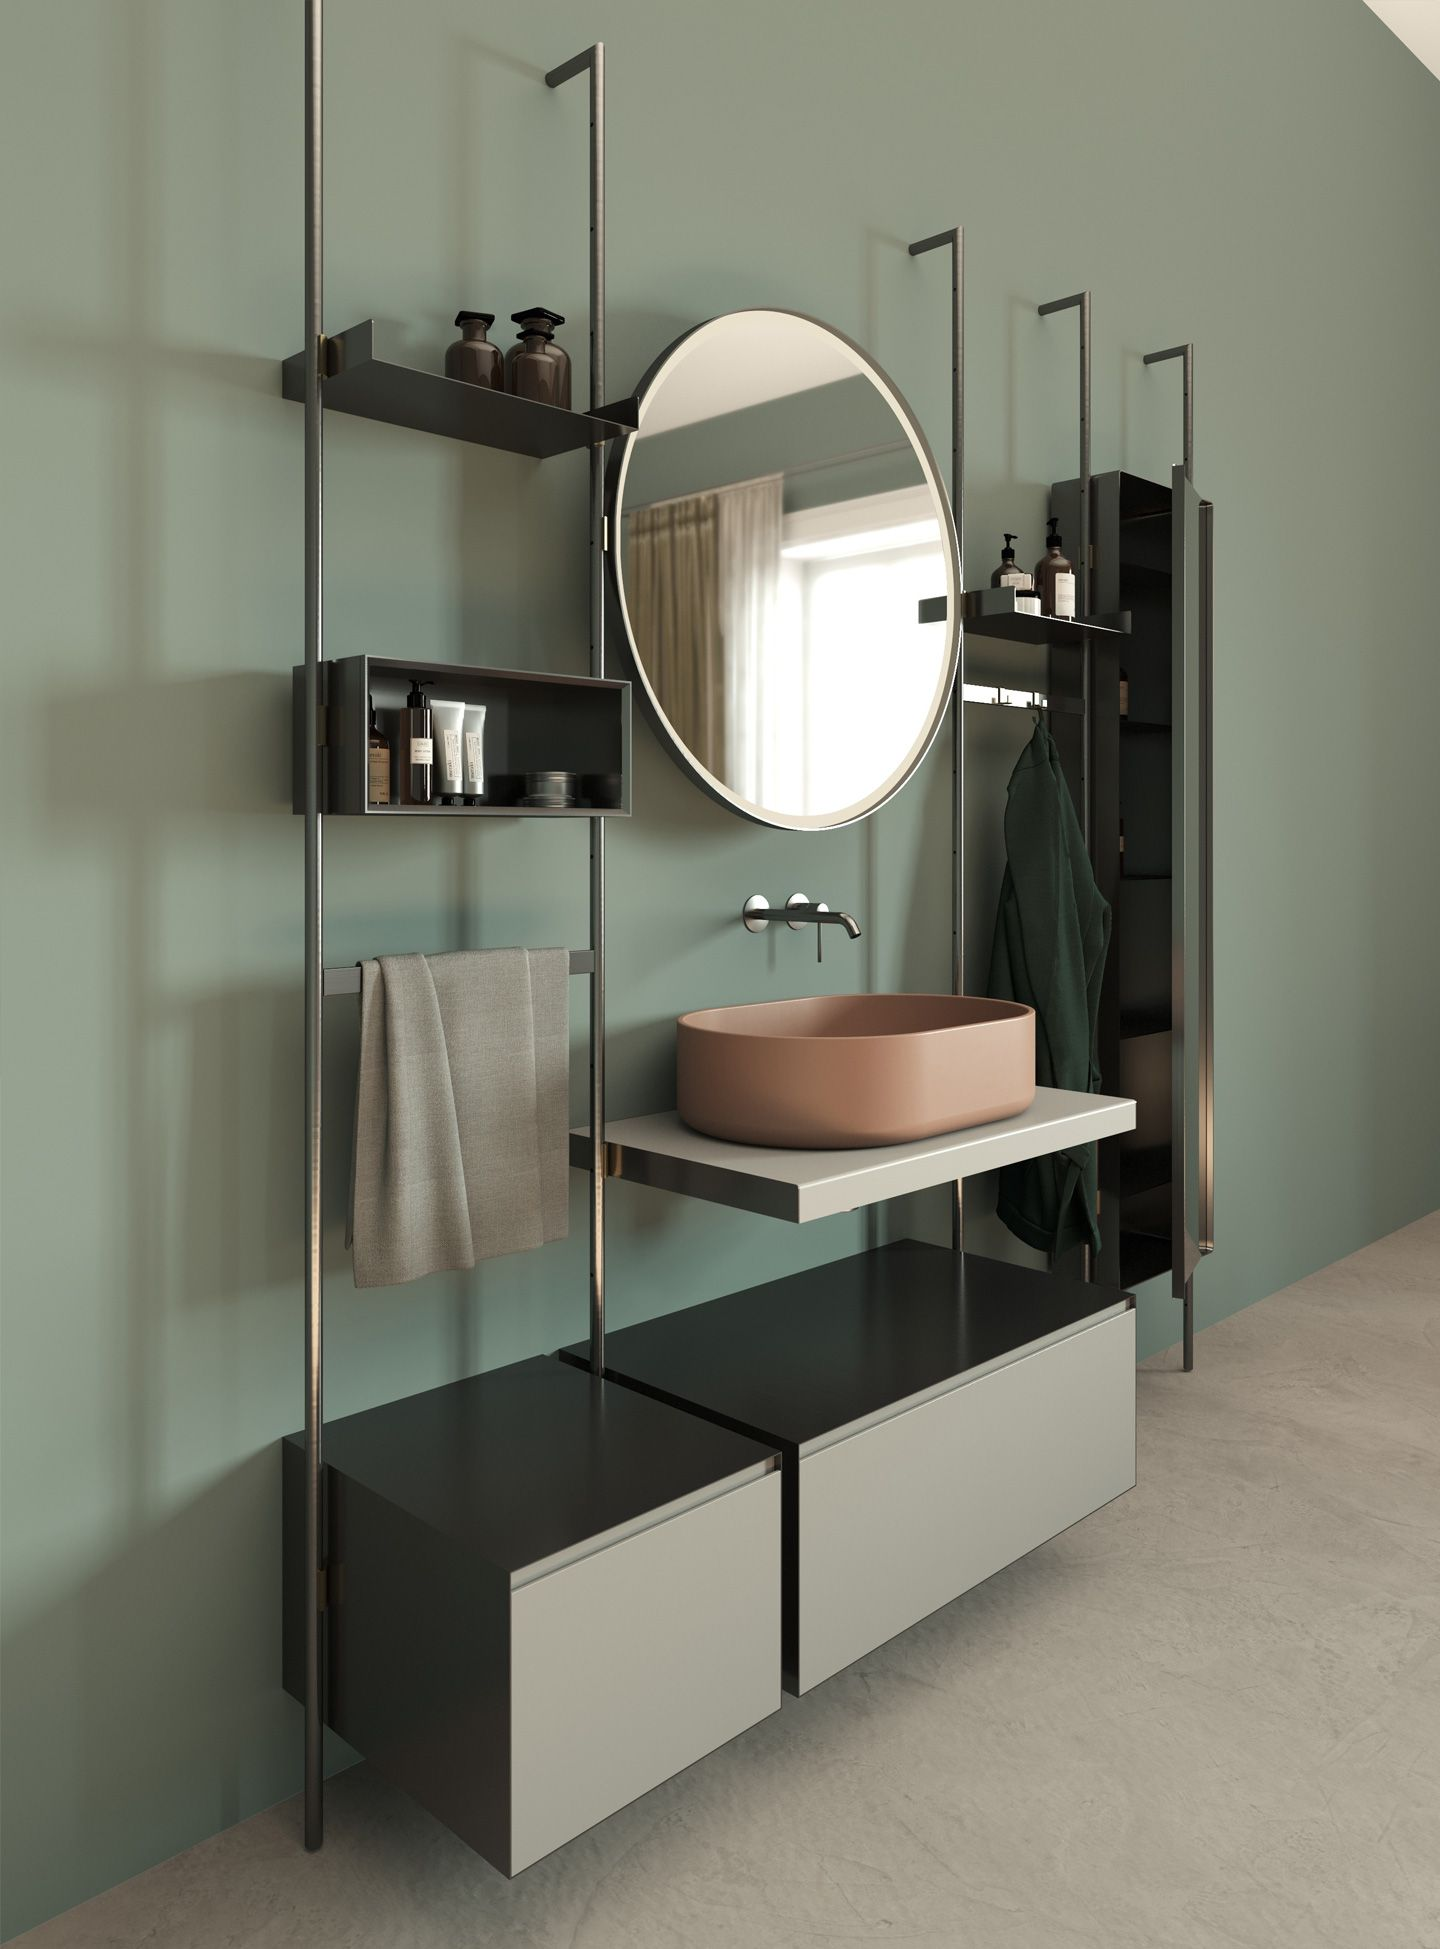 Mobile Lavabo Con Speccio By Nic Design In 2020 Vanity Units